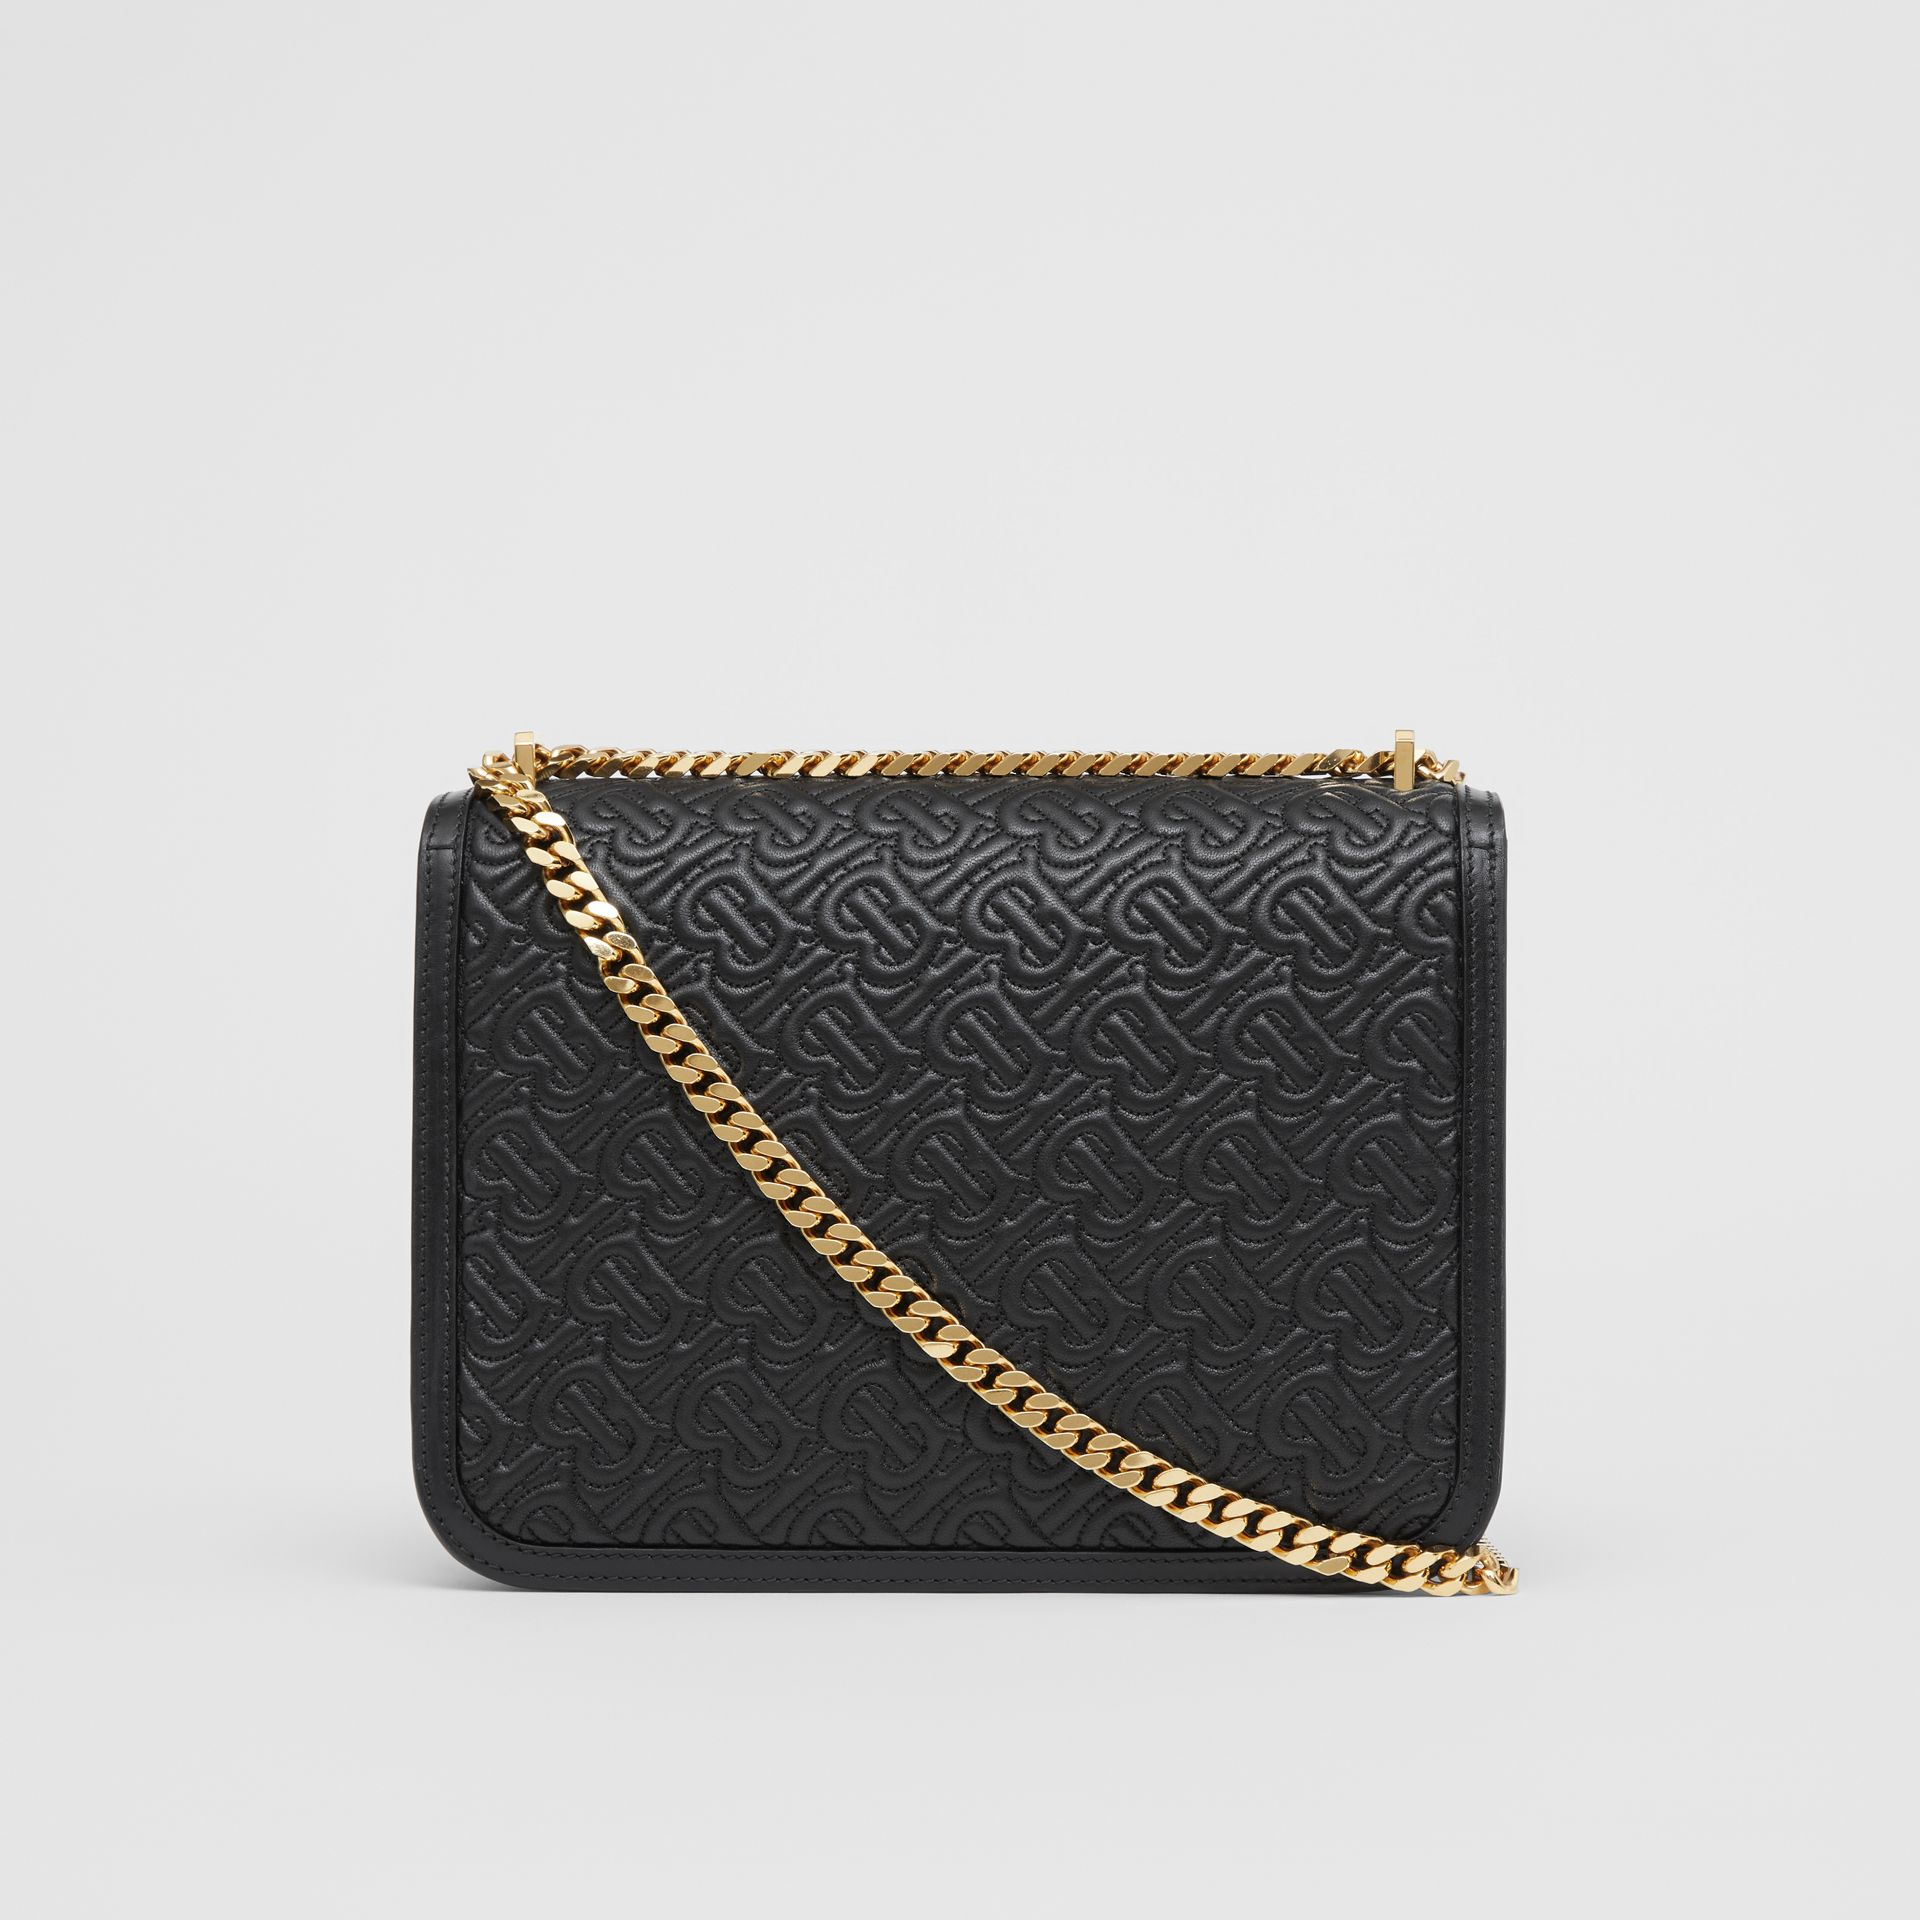 Medium Quilted Monogram Lambskin TB Bag in Black - Women | Burberry Canada - gallery image 7